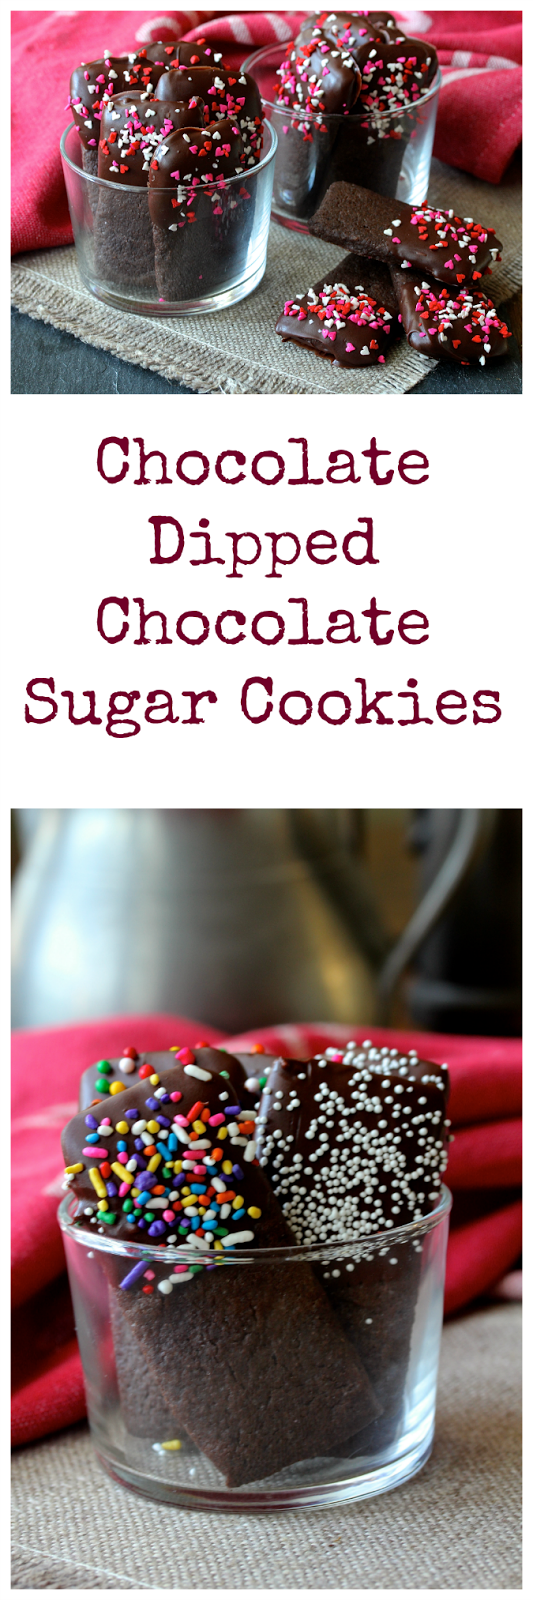 Chocolate Dipped Chocolate Sugar Cookies